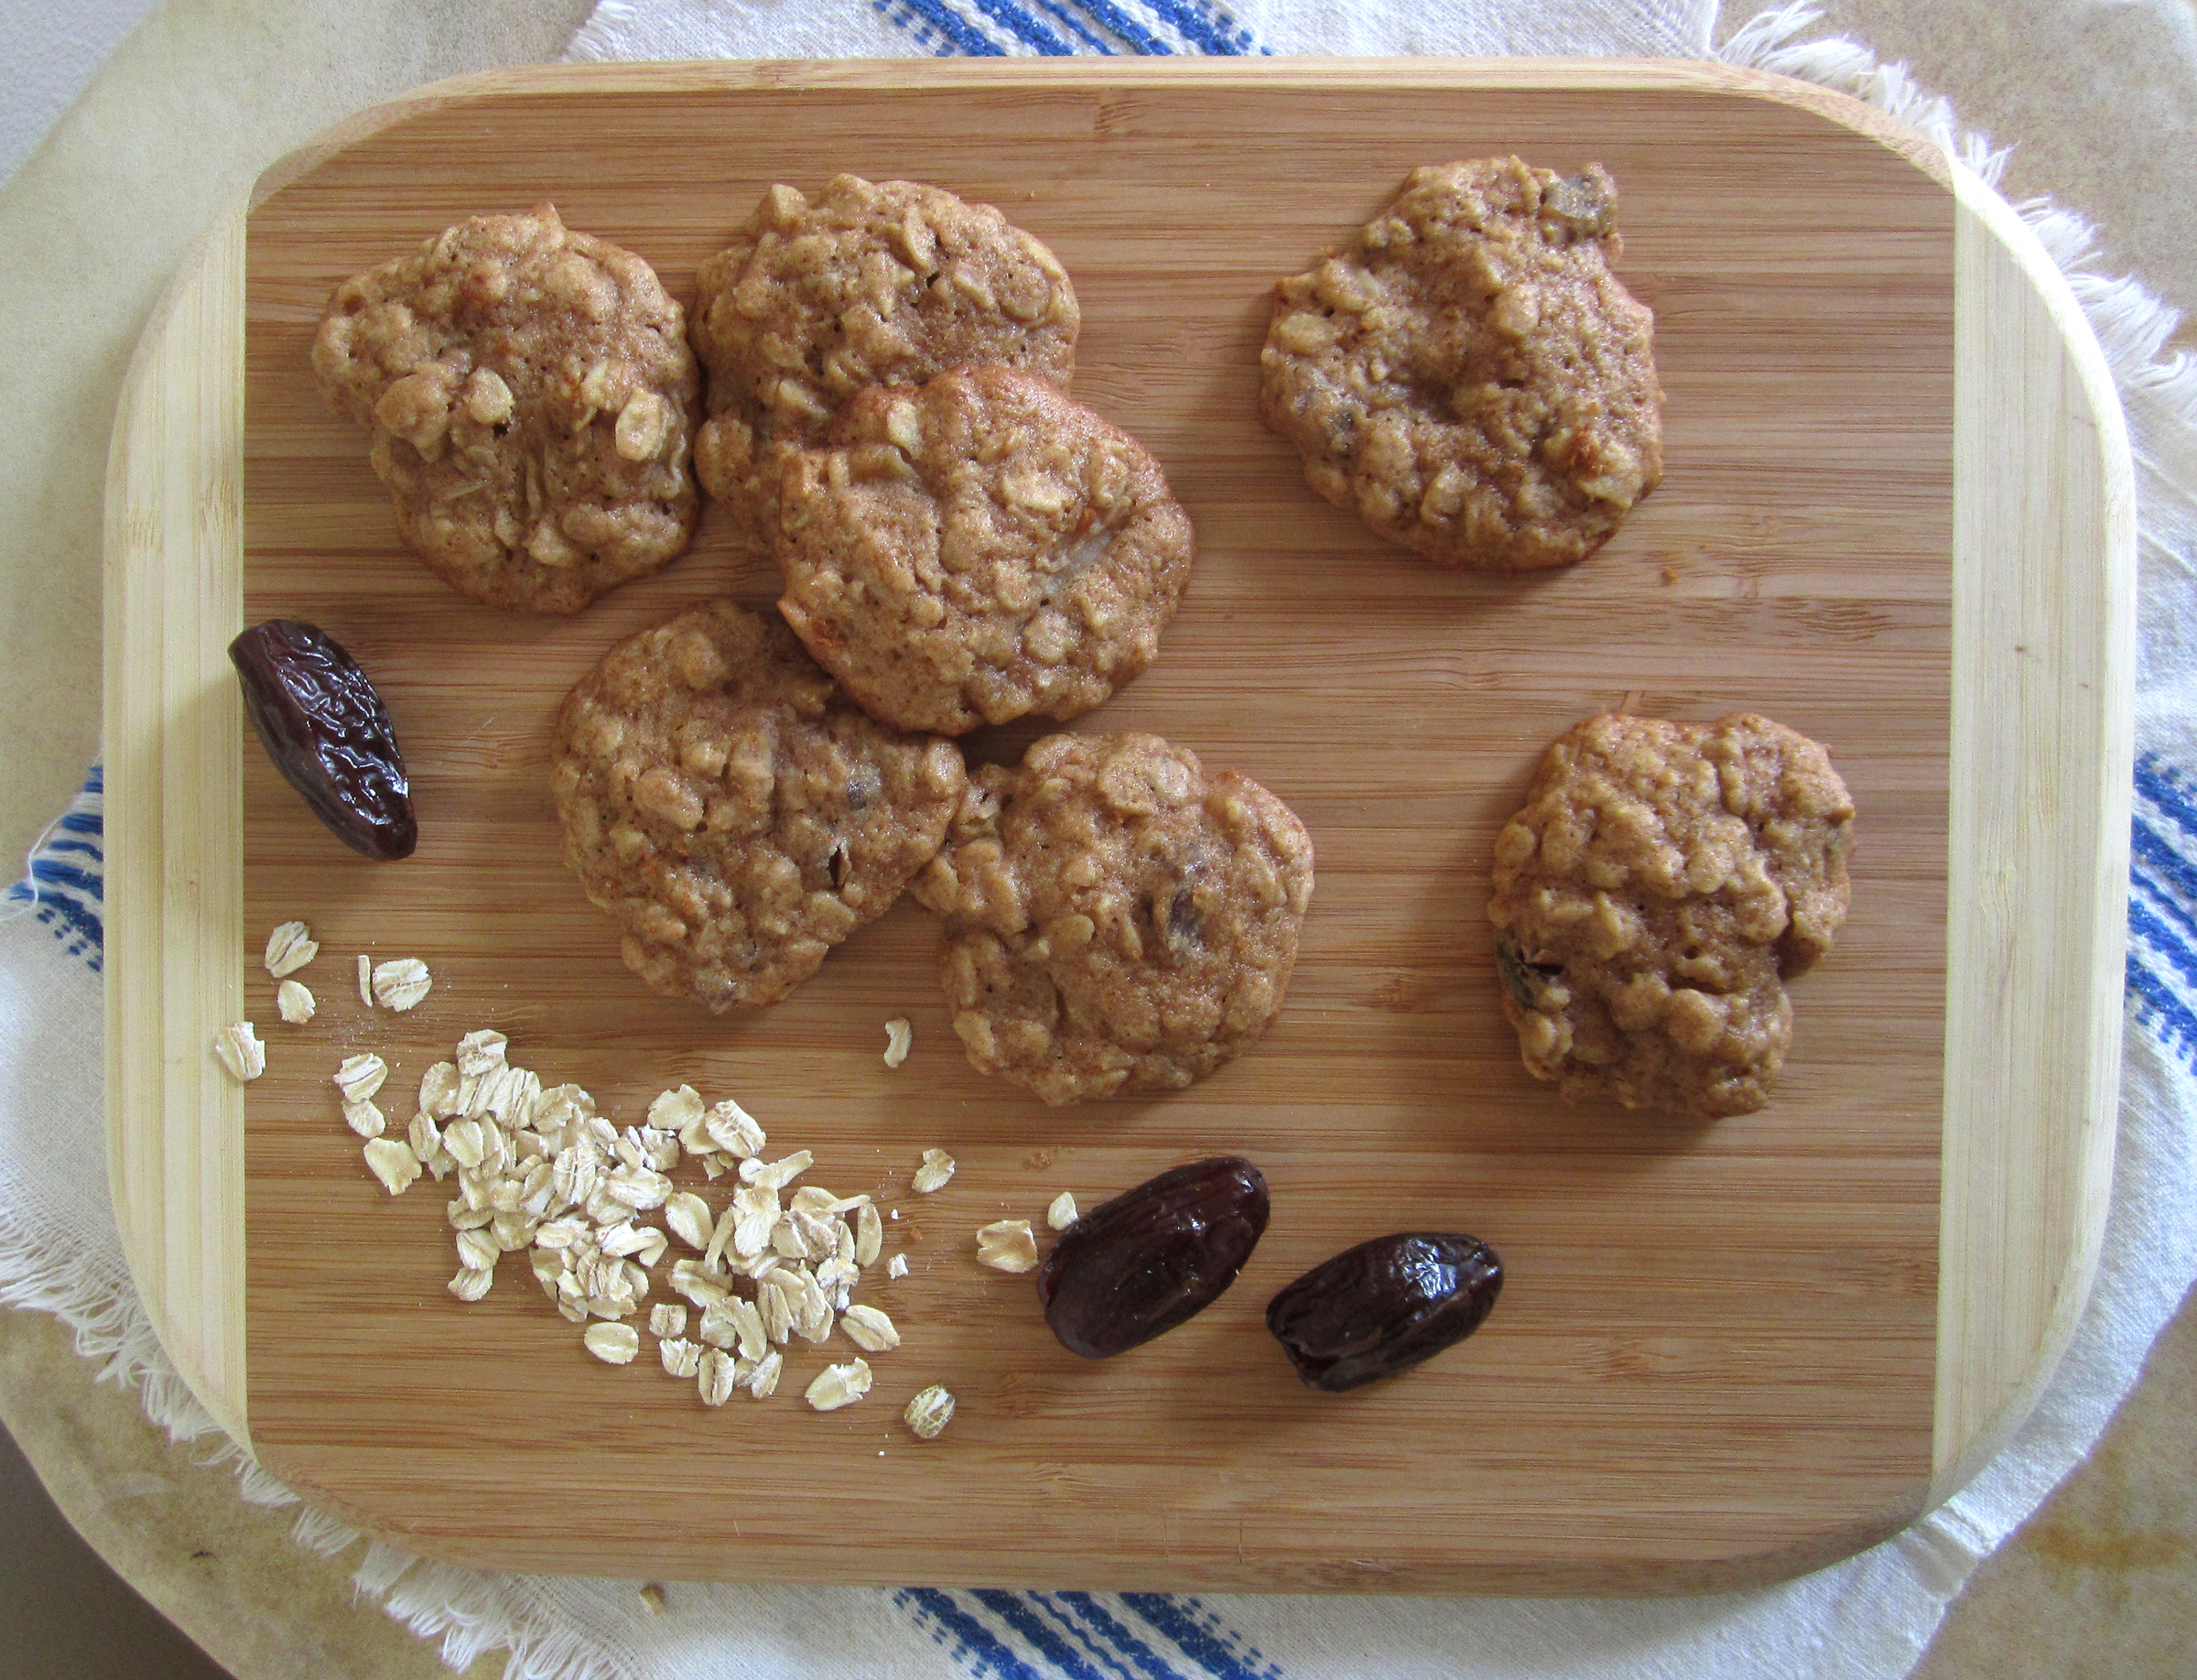 2400 x 1835 jpeg 3663kB, Oatmeal, Pear & Date Cookies - The Orange Bee